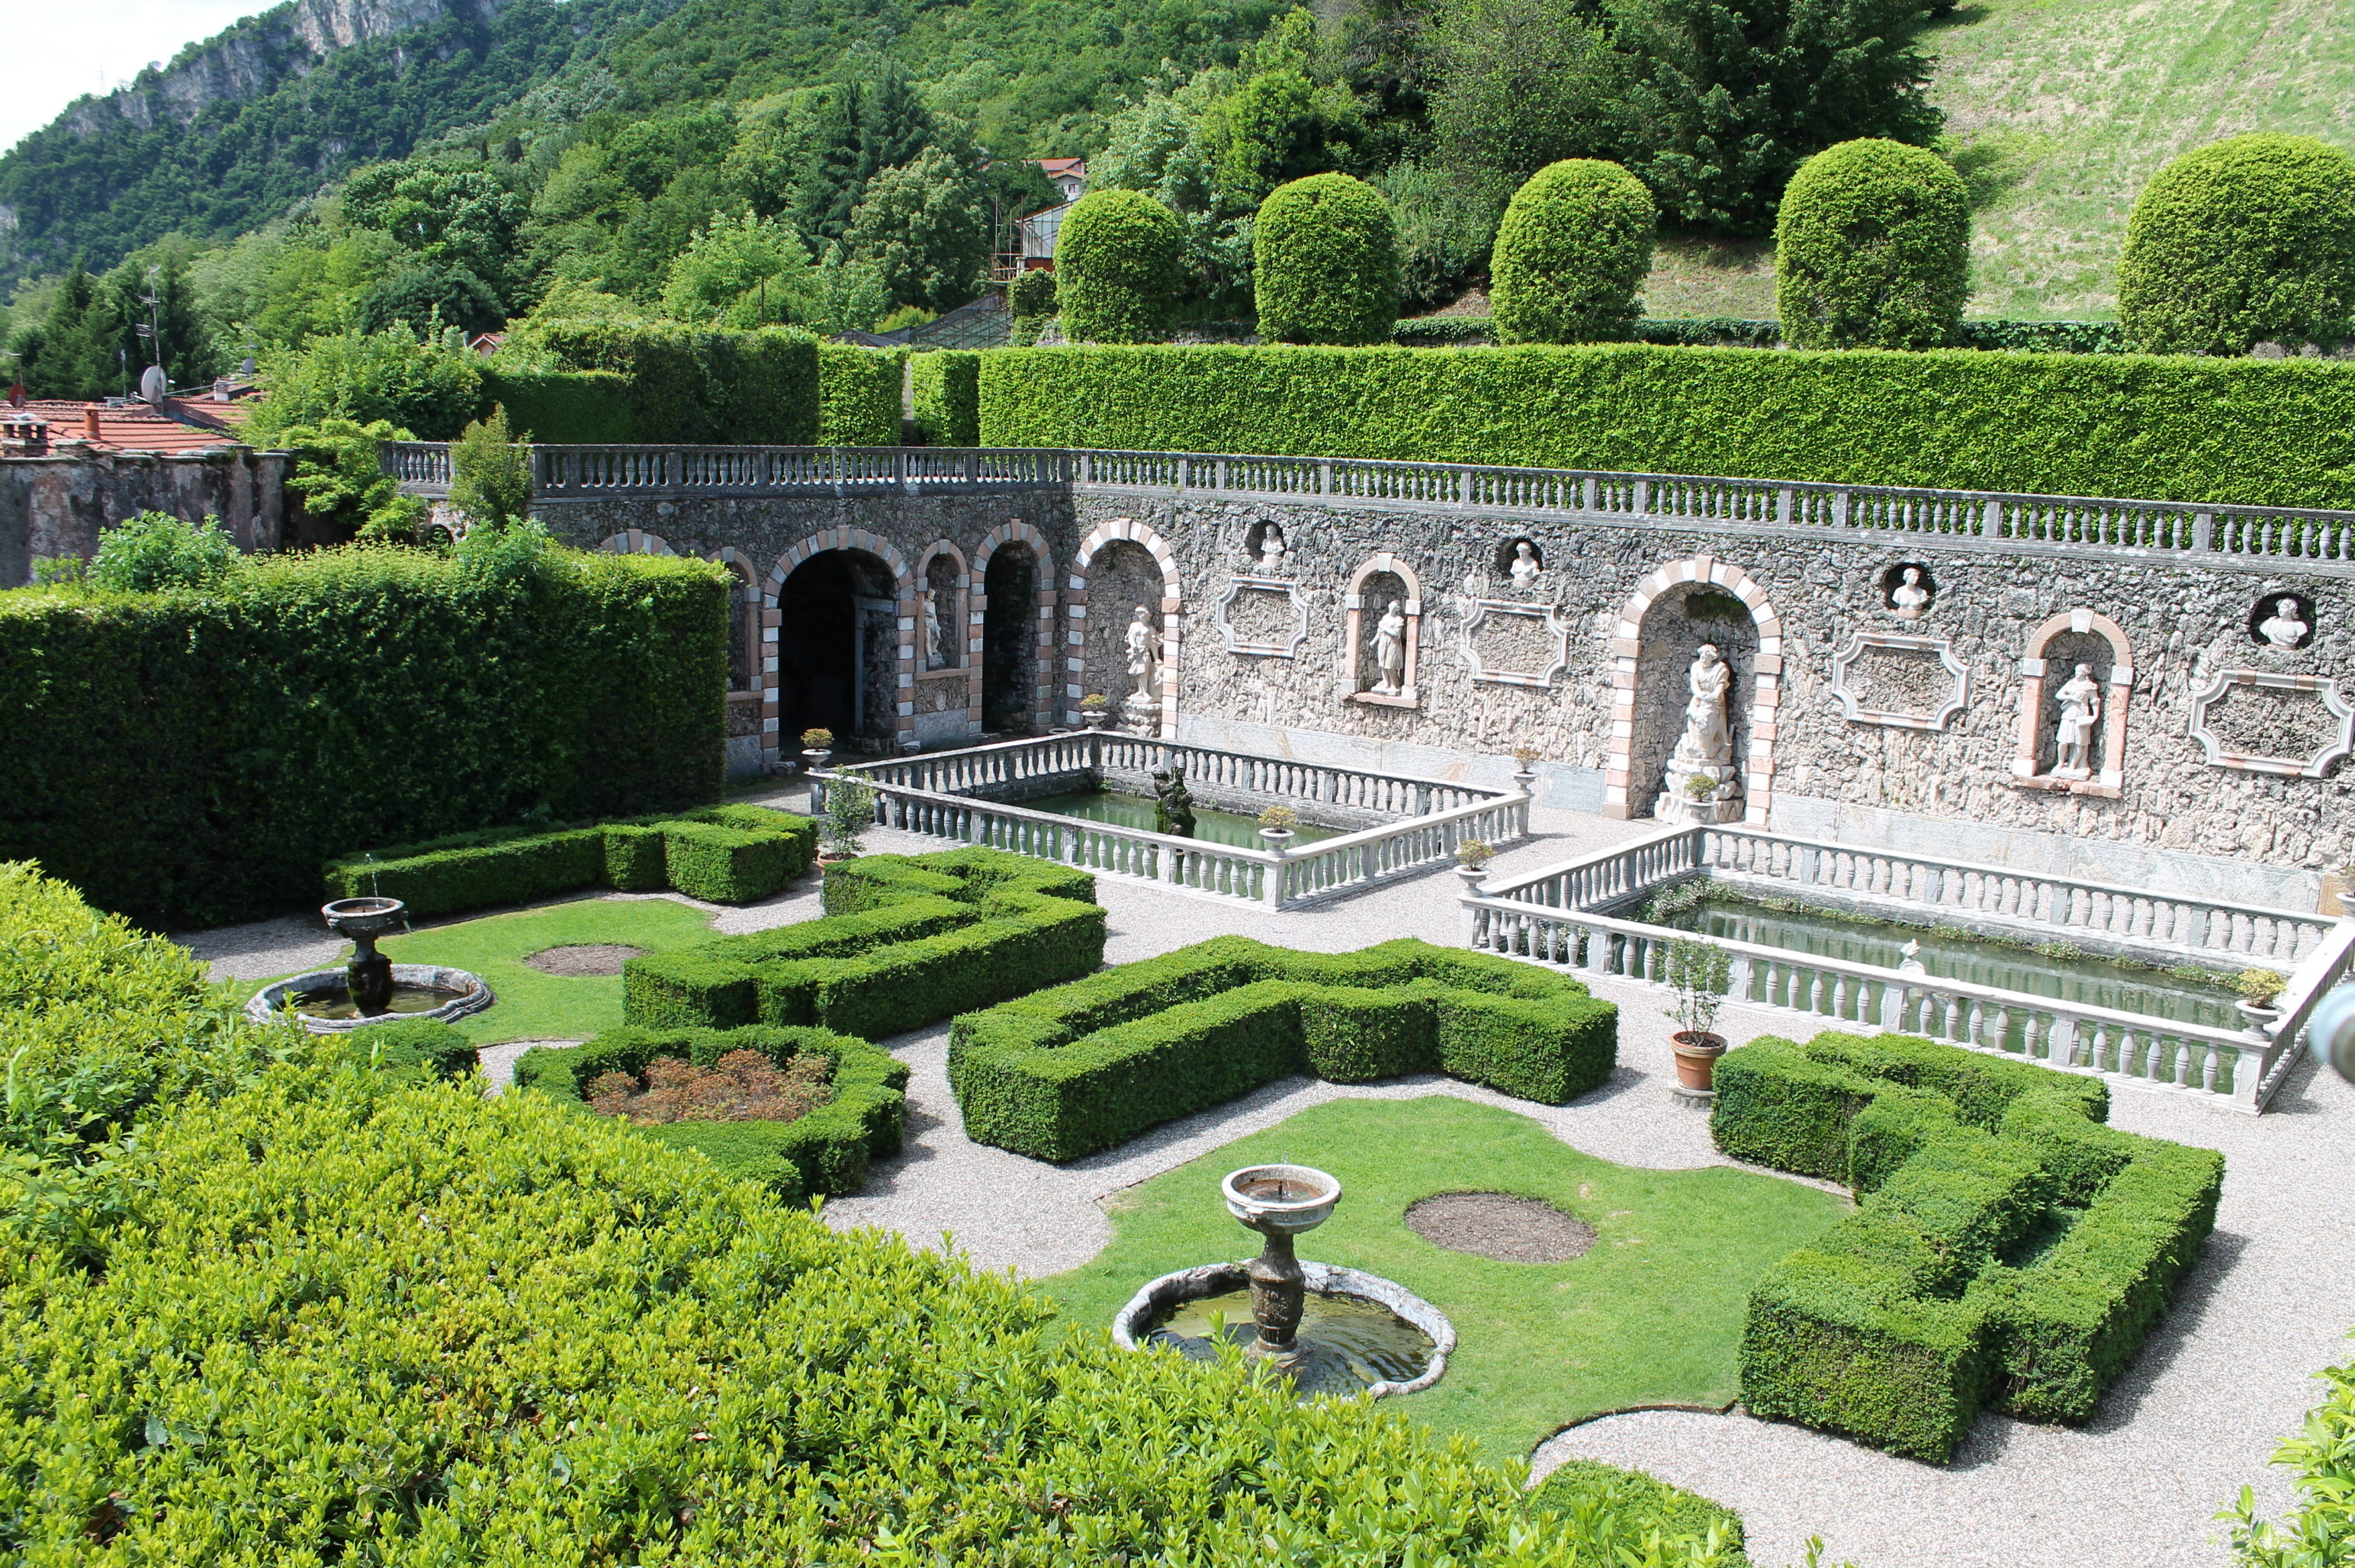 English In Italian: Gardens That Make You Want To Applaud